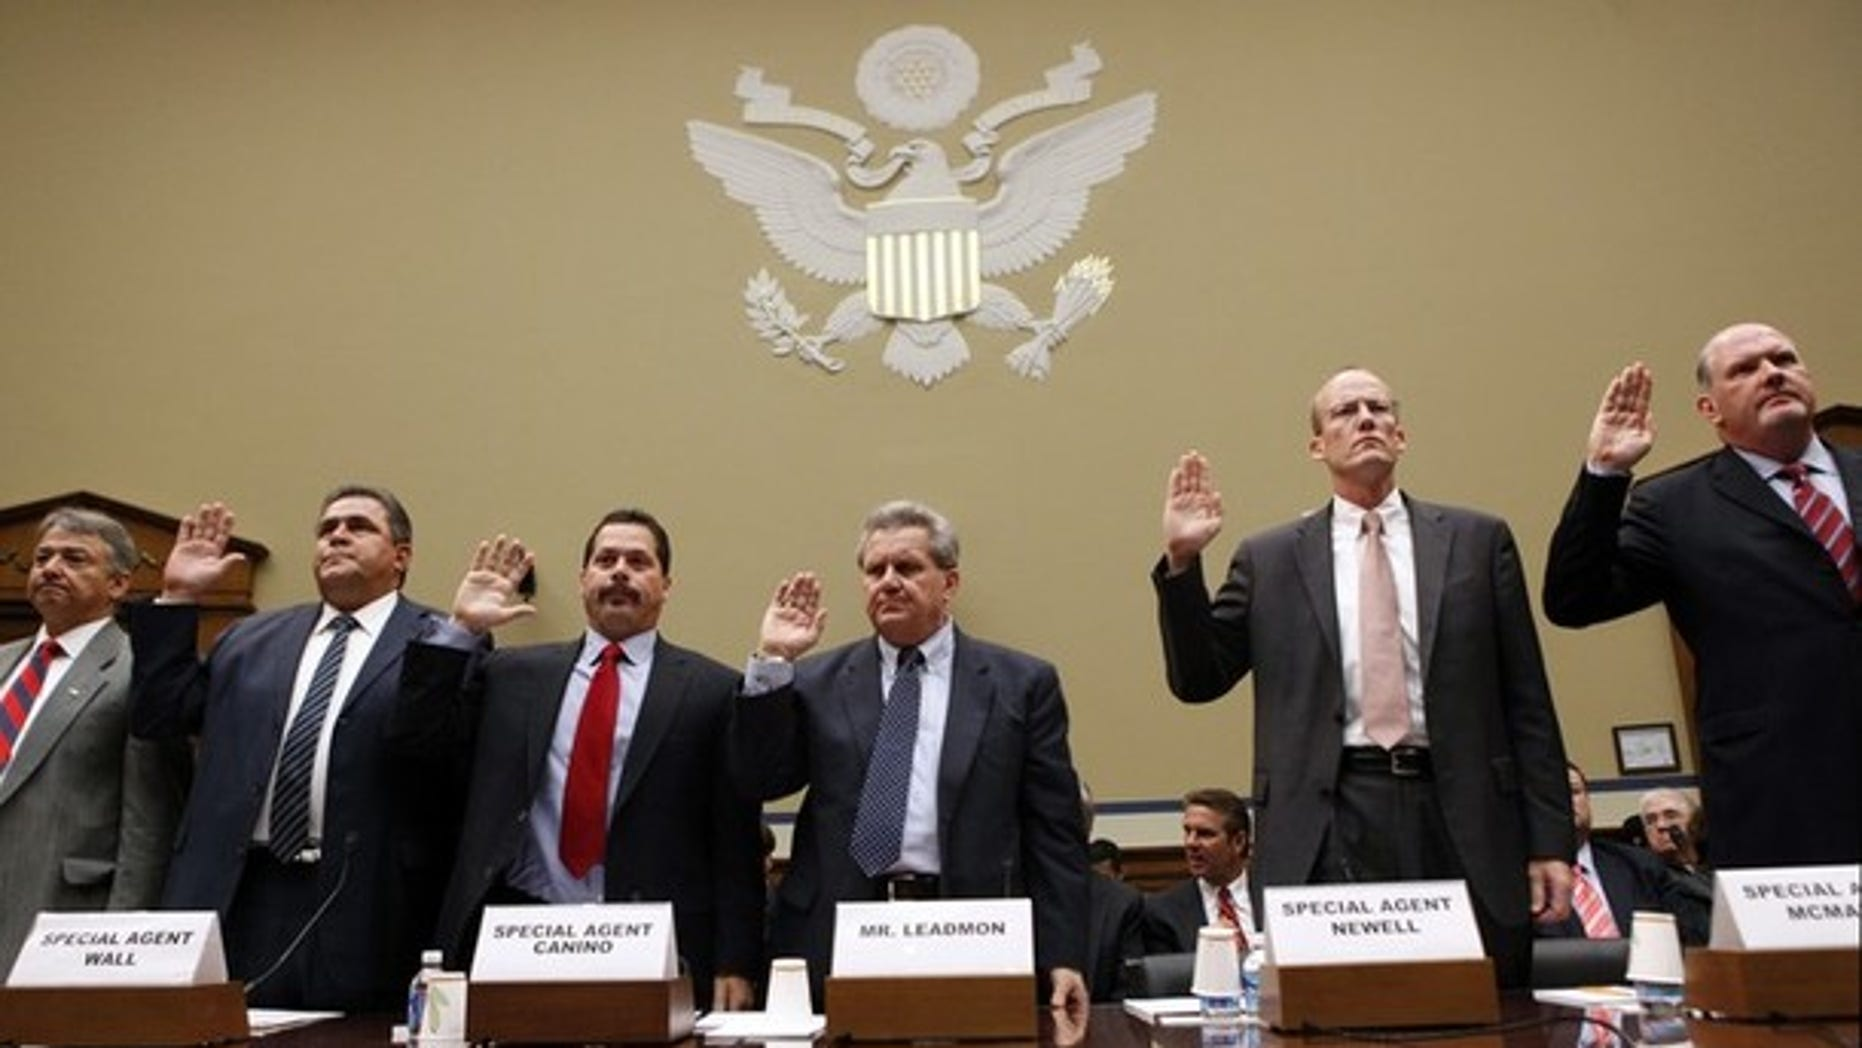 """Witnesses are sworn in at a hearing held by the House Oversight and Government Reform Committee on """"Operation Fast and Furious: The Other Side of the Border,"""" on Capitol Hill in Washington, July 26, 2011."""